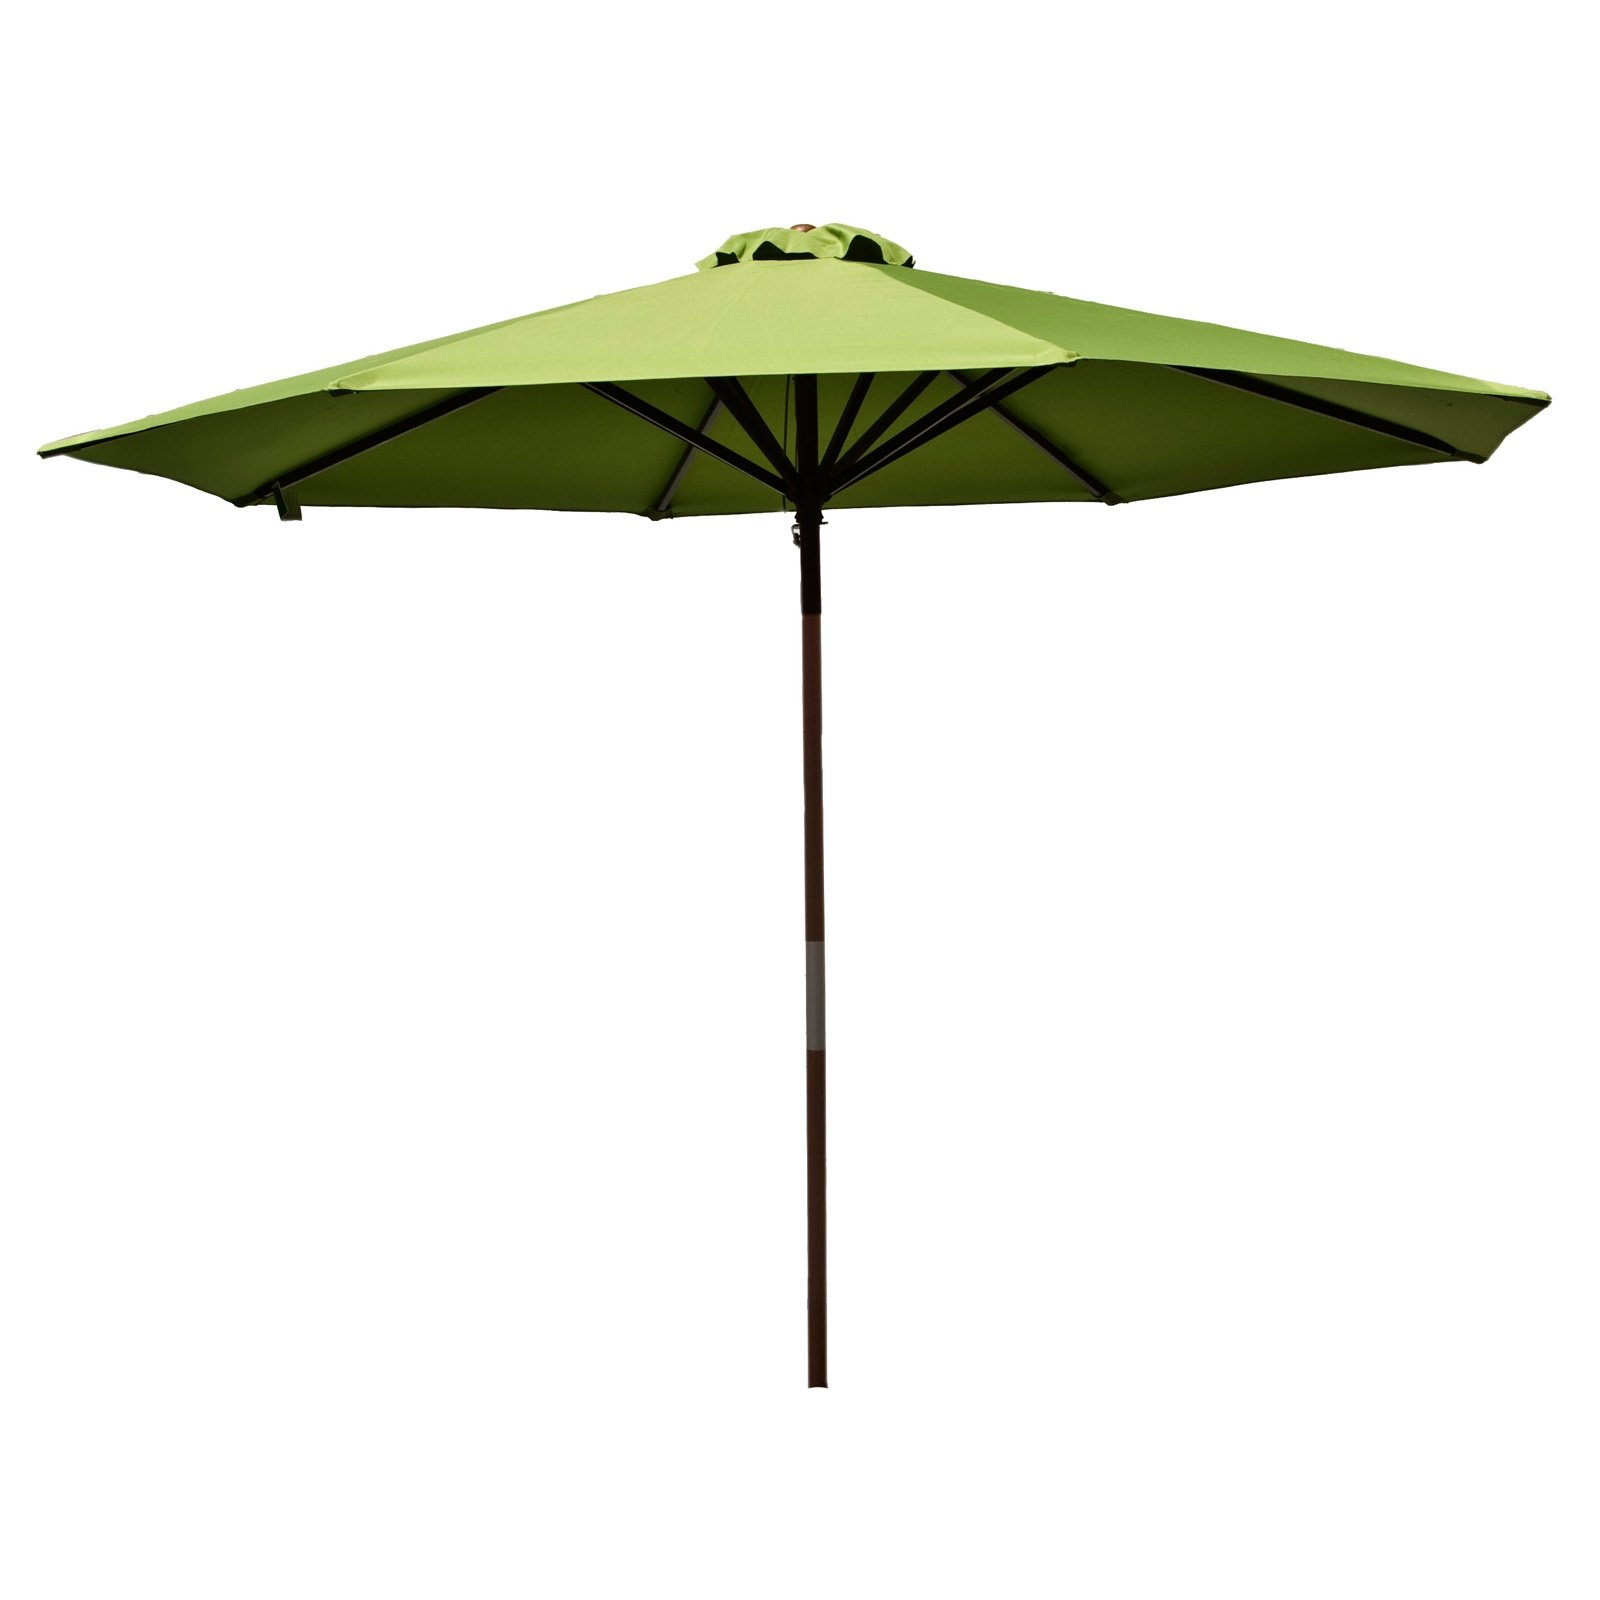 Classic Wood 9 foot Market Patio Umbrella - Lime